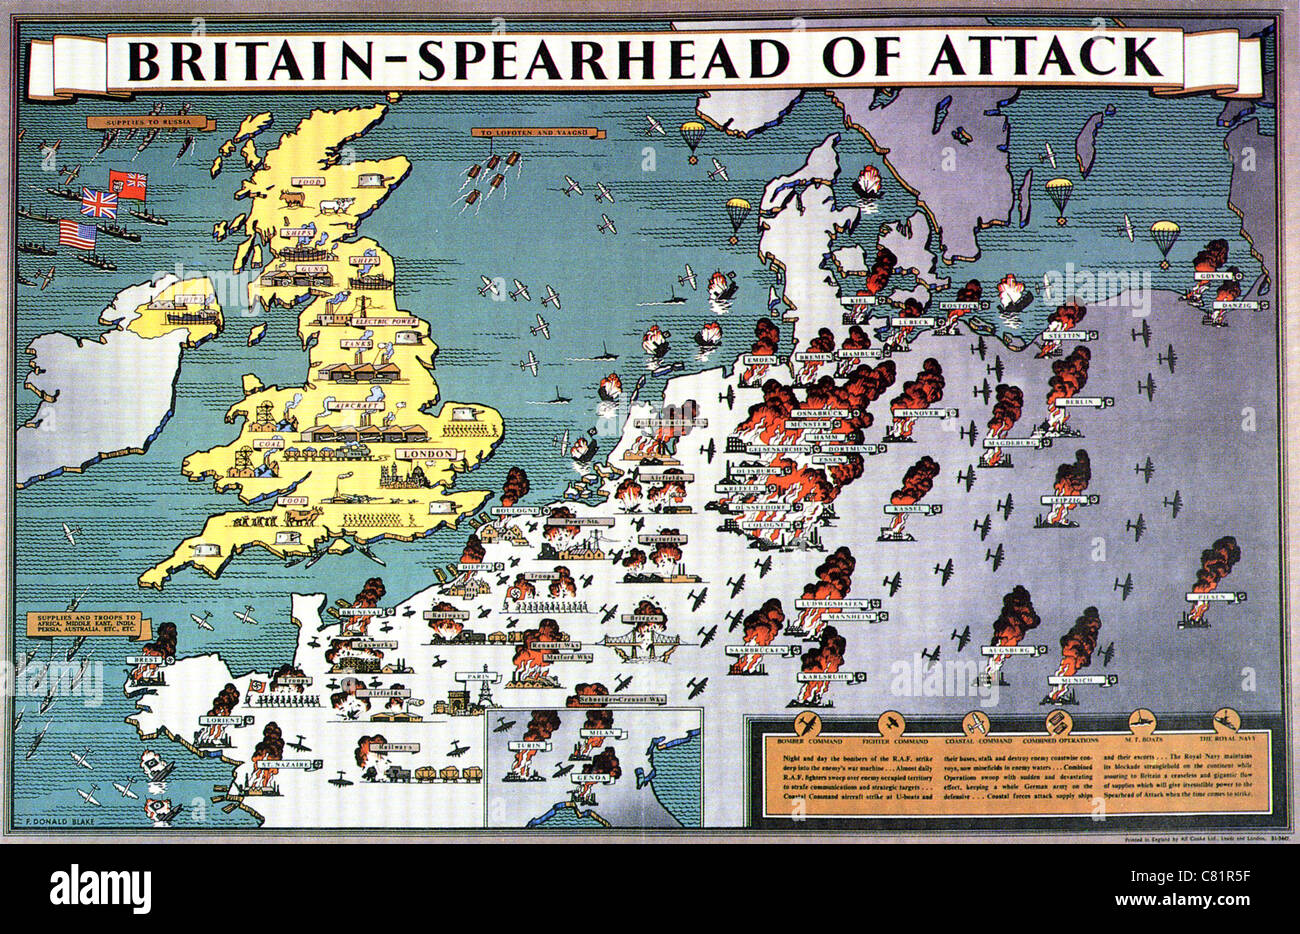 Britain spearhead of attack british ww2 poster shows the uk as britain spearhead of attack british ww2 poster shows the uk as the industrial powerhouse and platform for attack on europe gumiabroncs Images